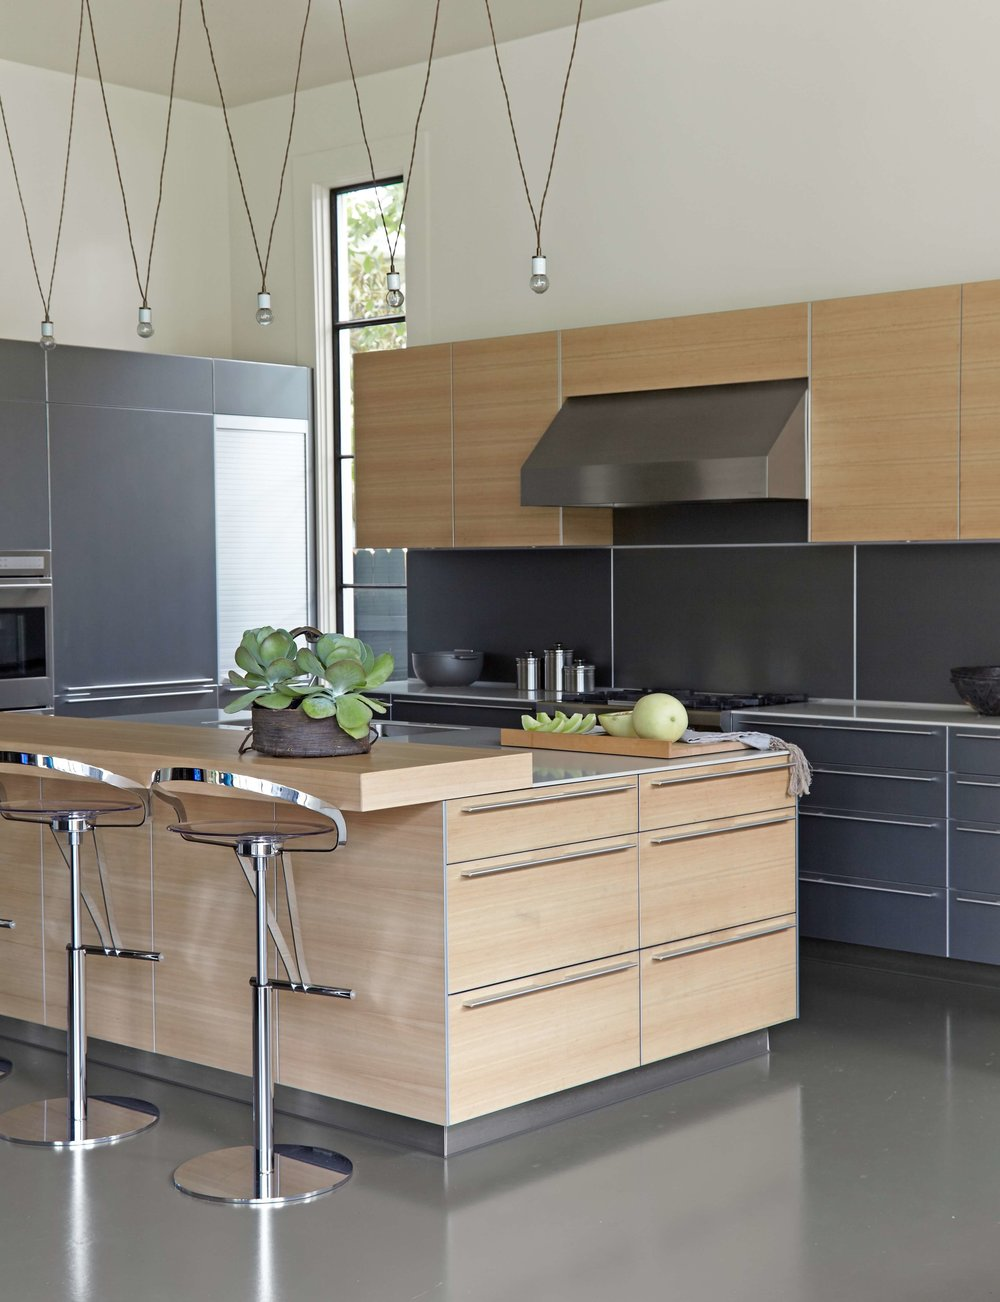 AHD-chrome-accents-in-modern-kitchen.jpg